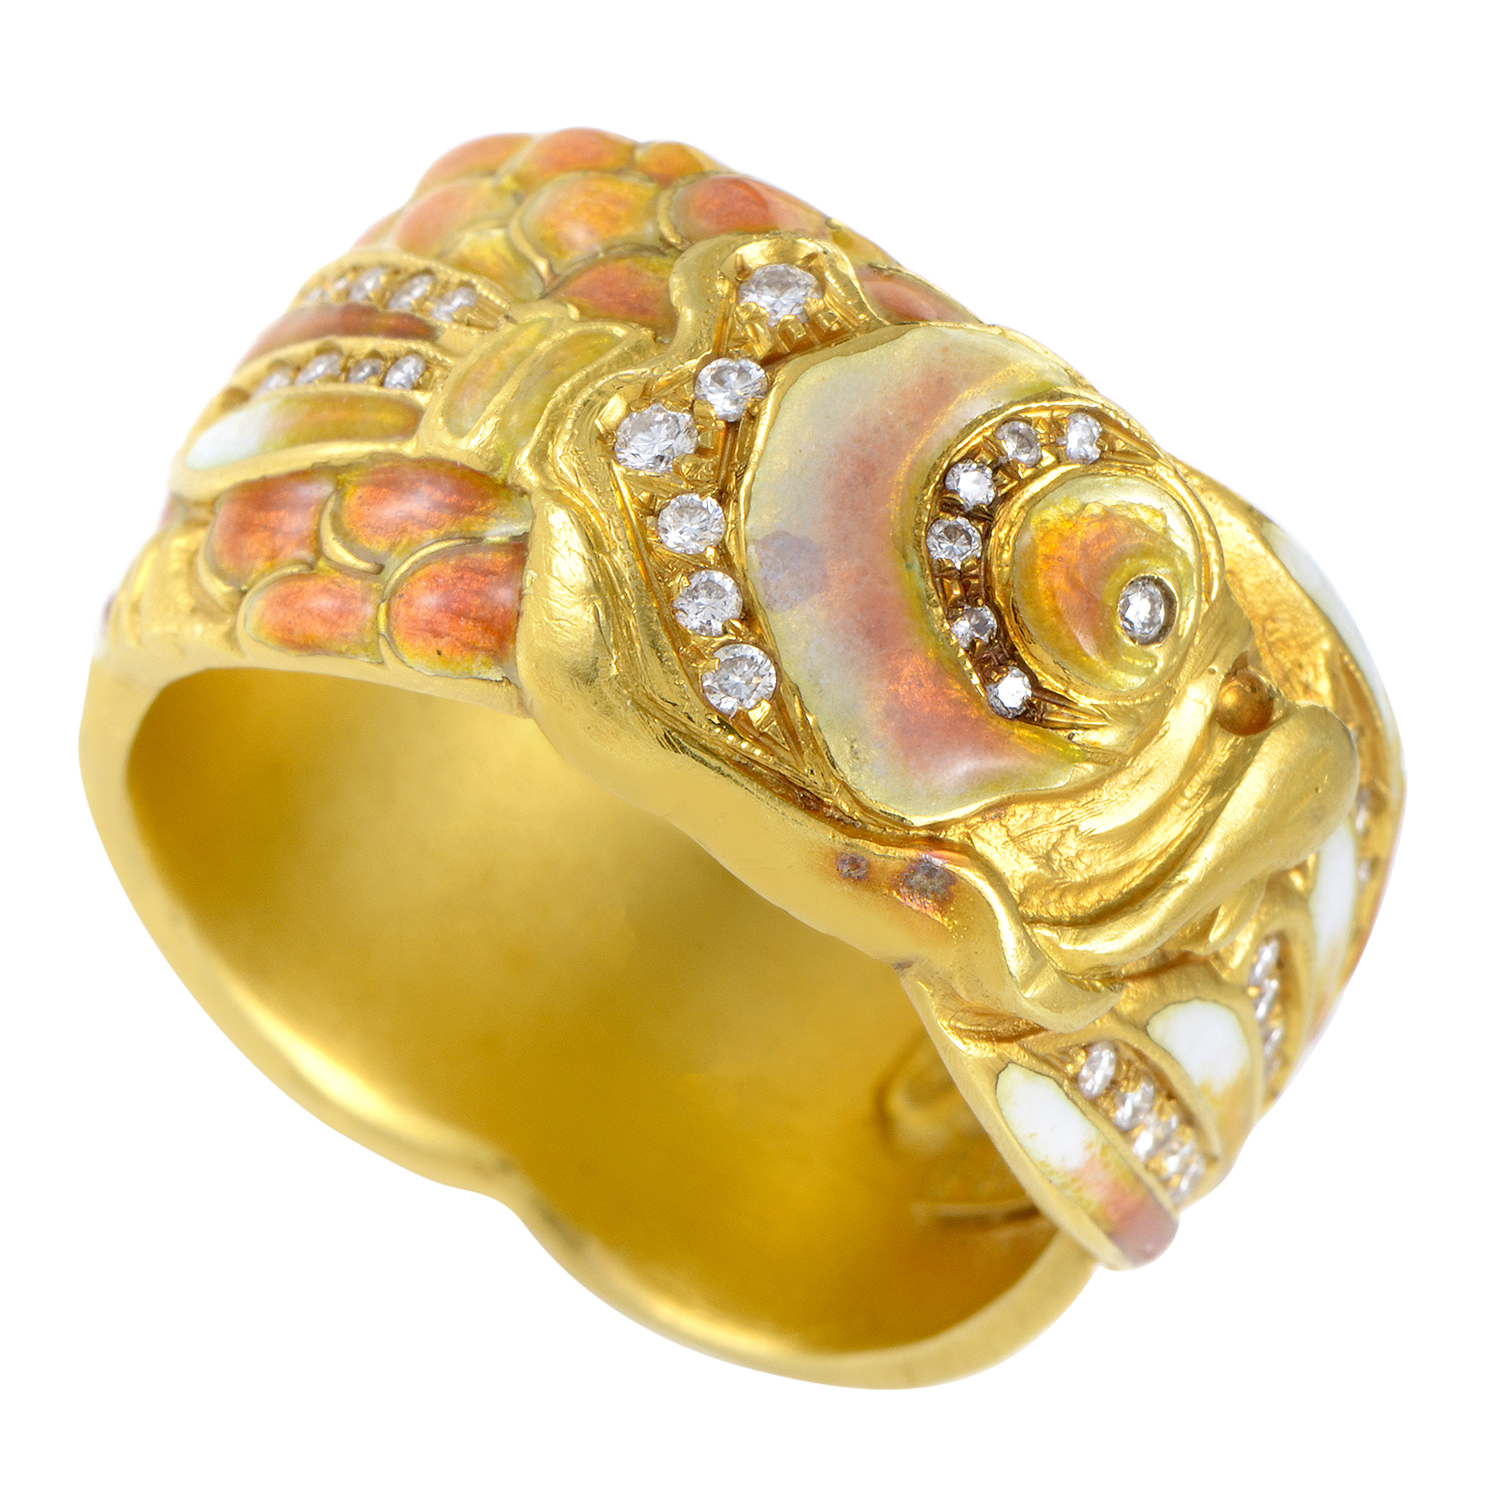 Masriera Women's Enameled 18K Yellow Gold & Diamond Carp Band Ring